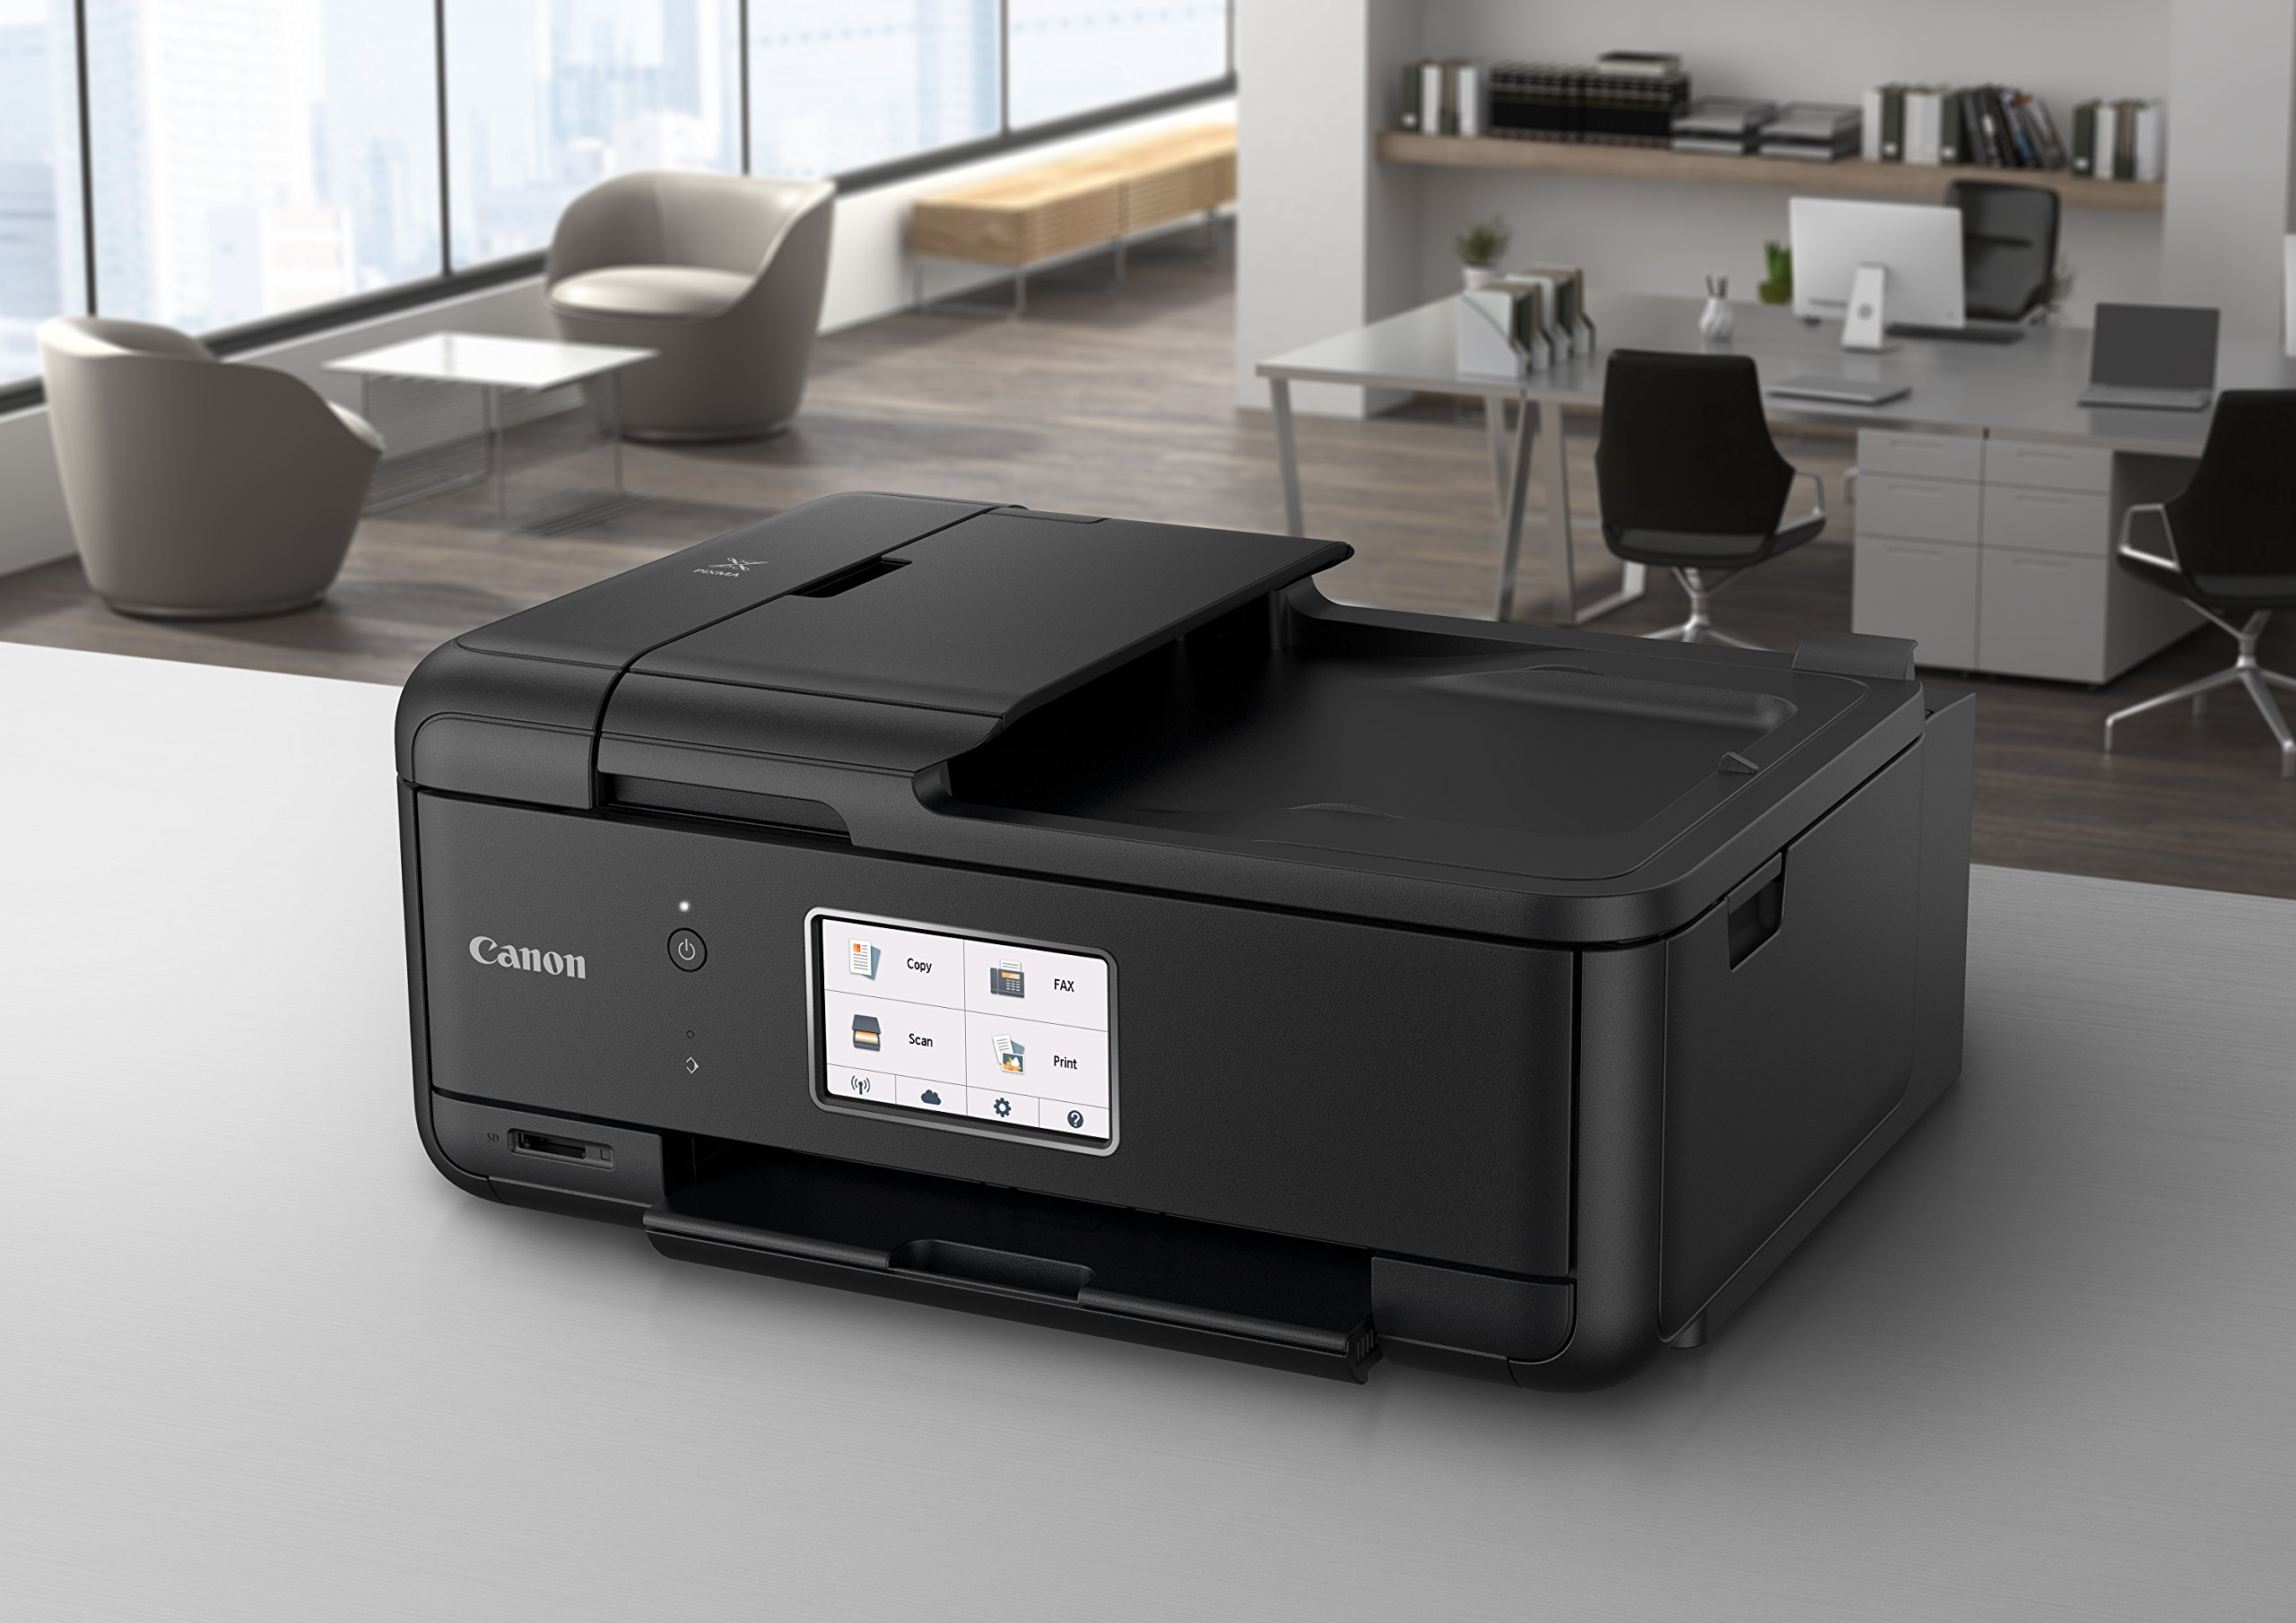 Canon PIXMA TR8520 Wireless All in One Printer | Mobile Printing | Photo and Document Printing, AirPrint(R) and Google Cloud Printing, Black by Canon (Image #4)